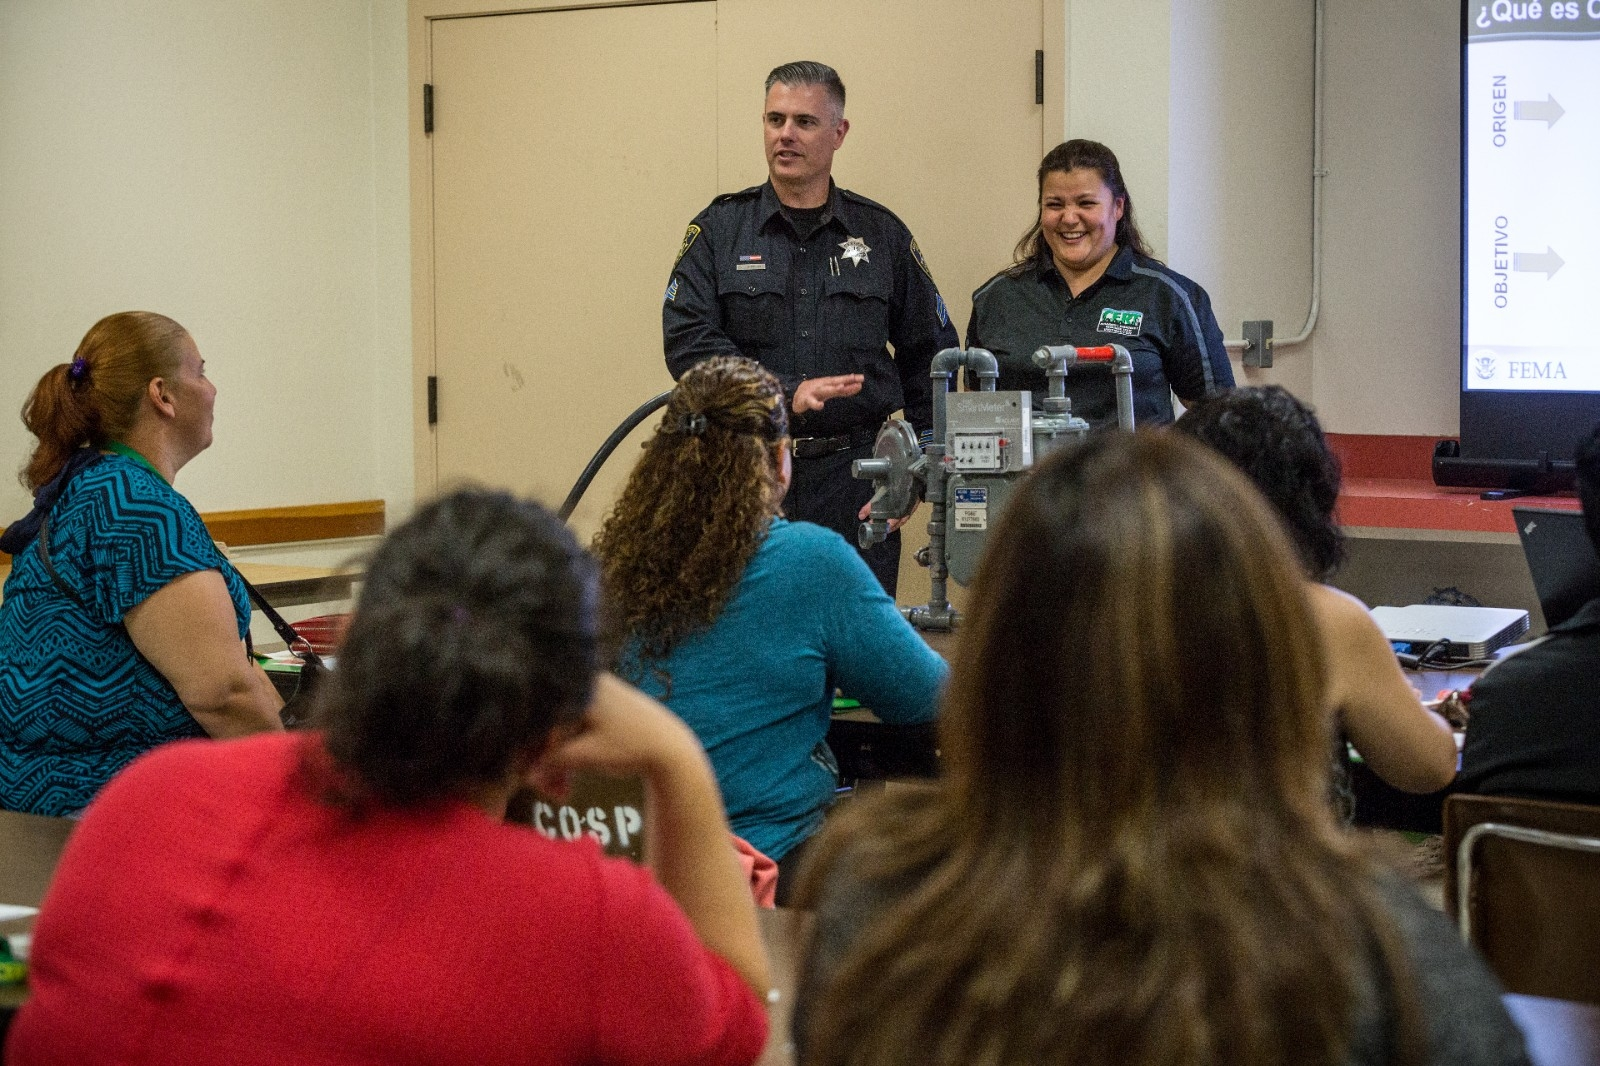 A police officer teaches a community class.